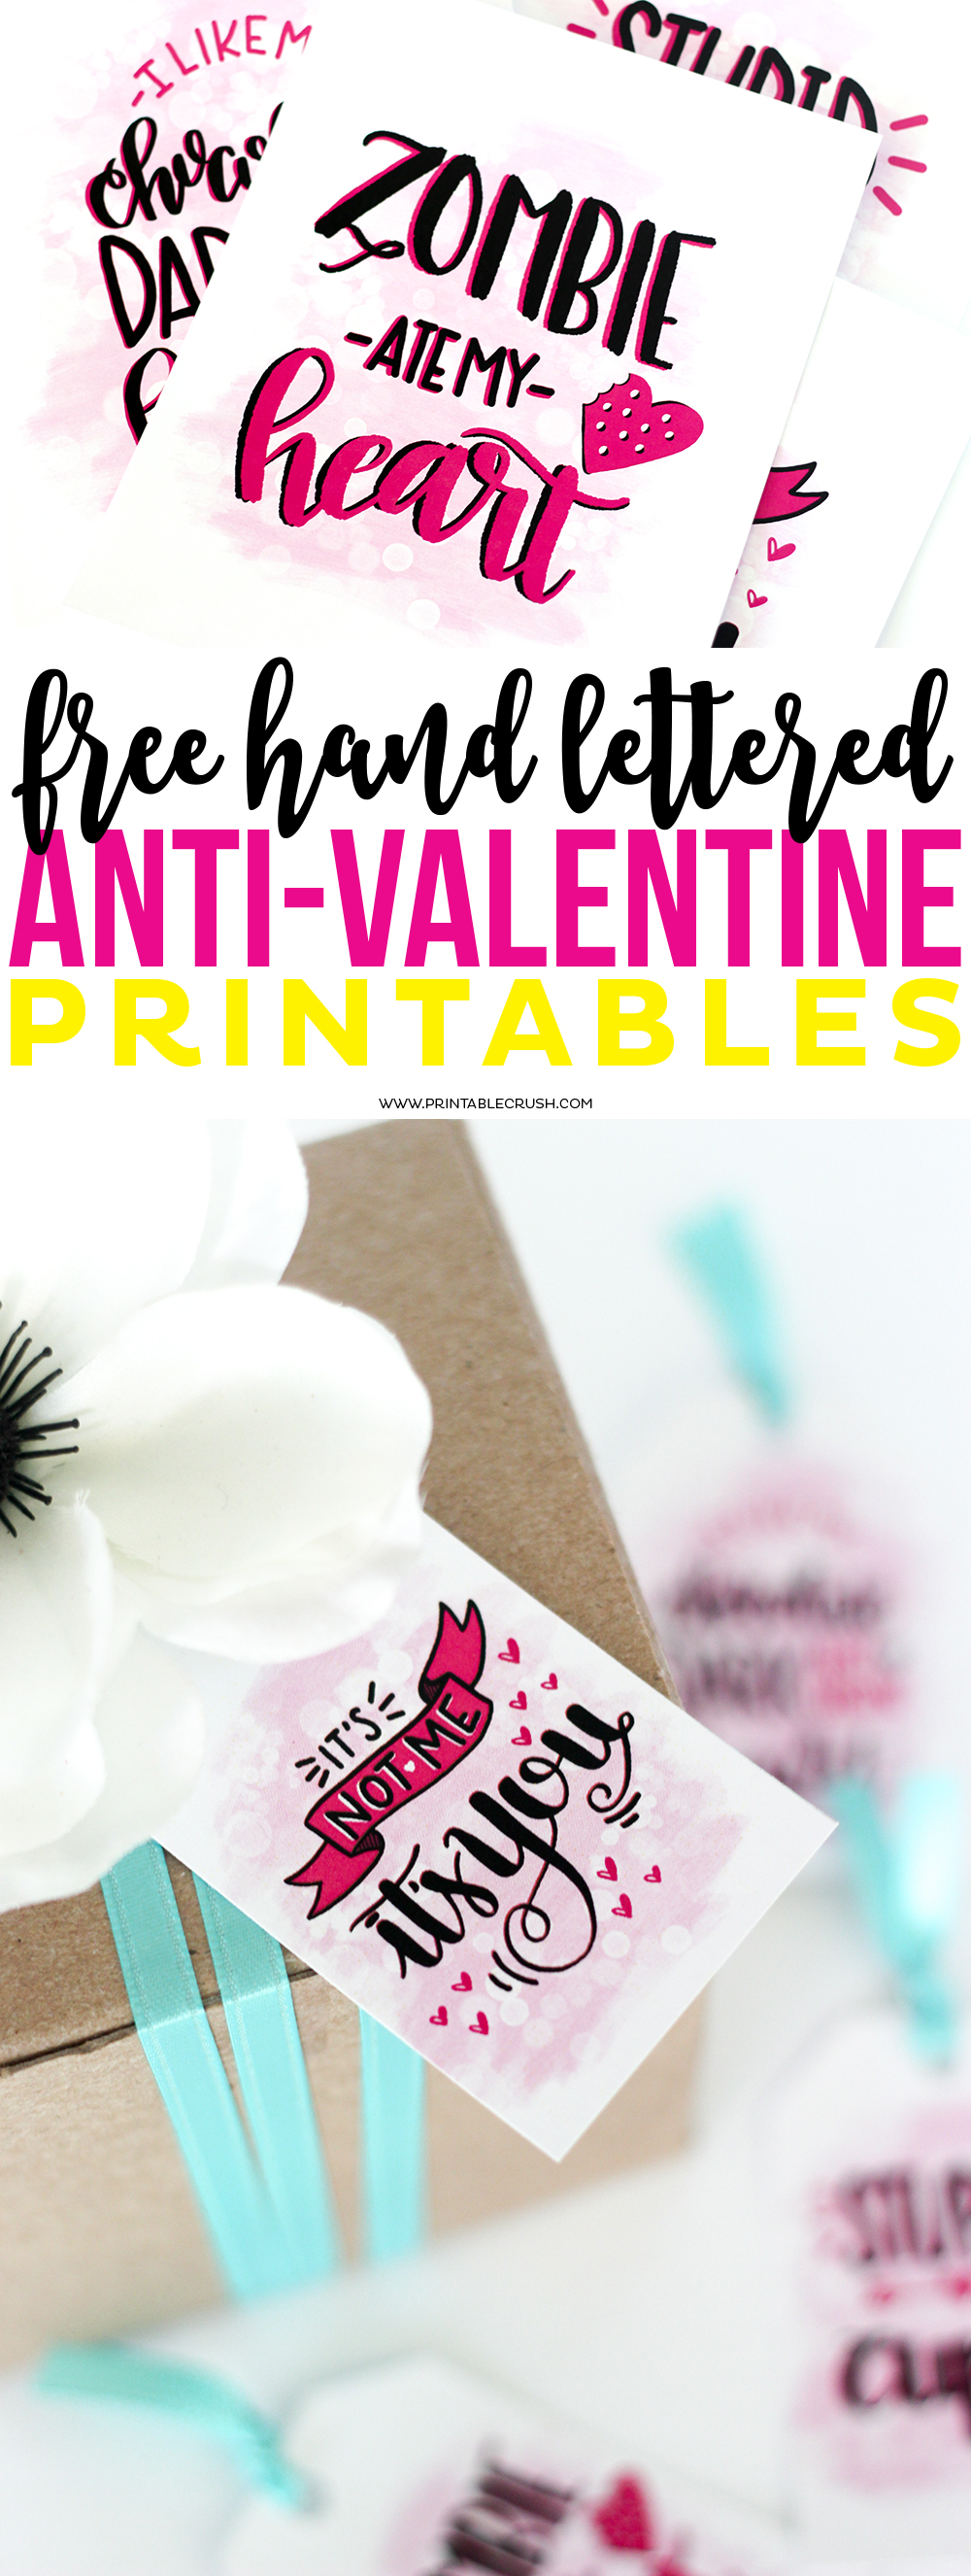 Enjoy these witty and FREE Hand Lettered Anti-Valentine Printables...for those that aren't fans of the day of love! Includes free gift tags and word art!